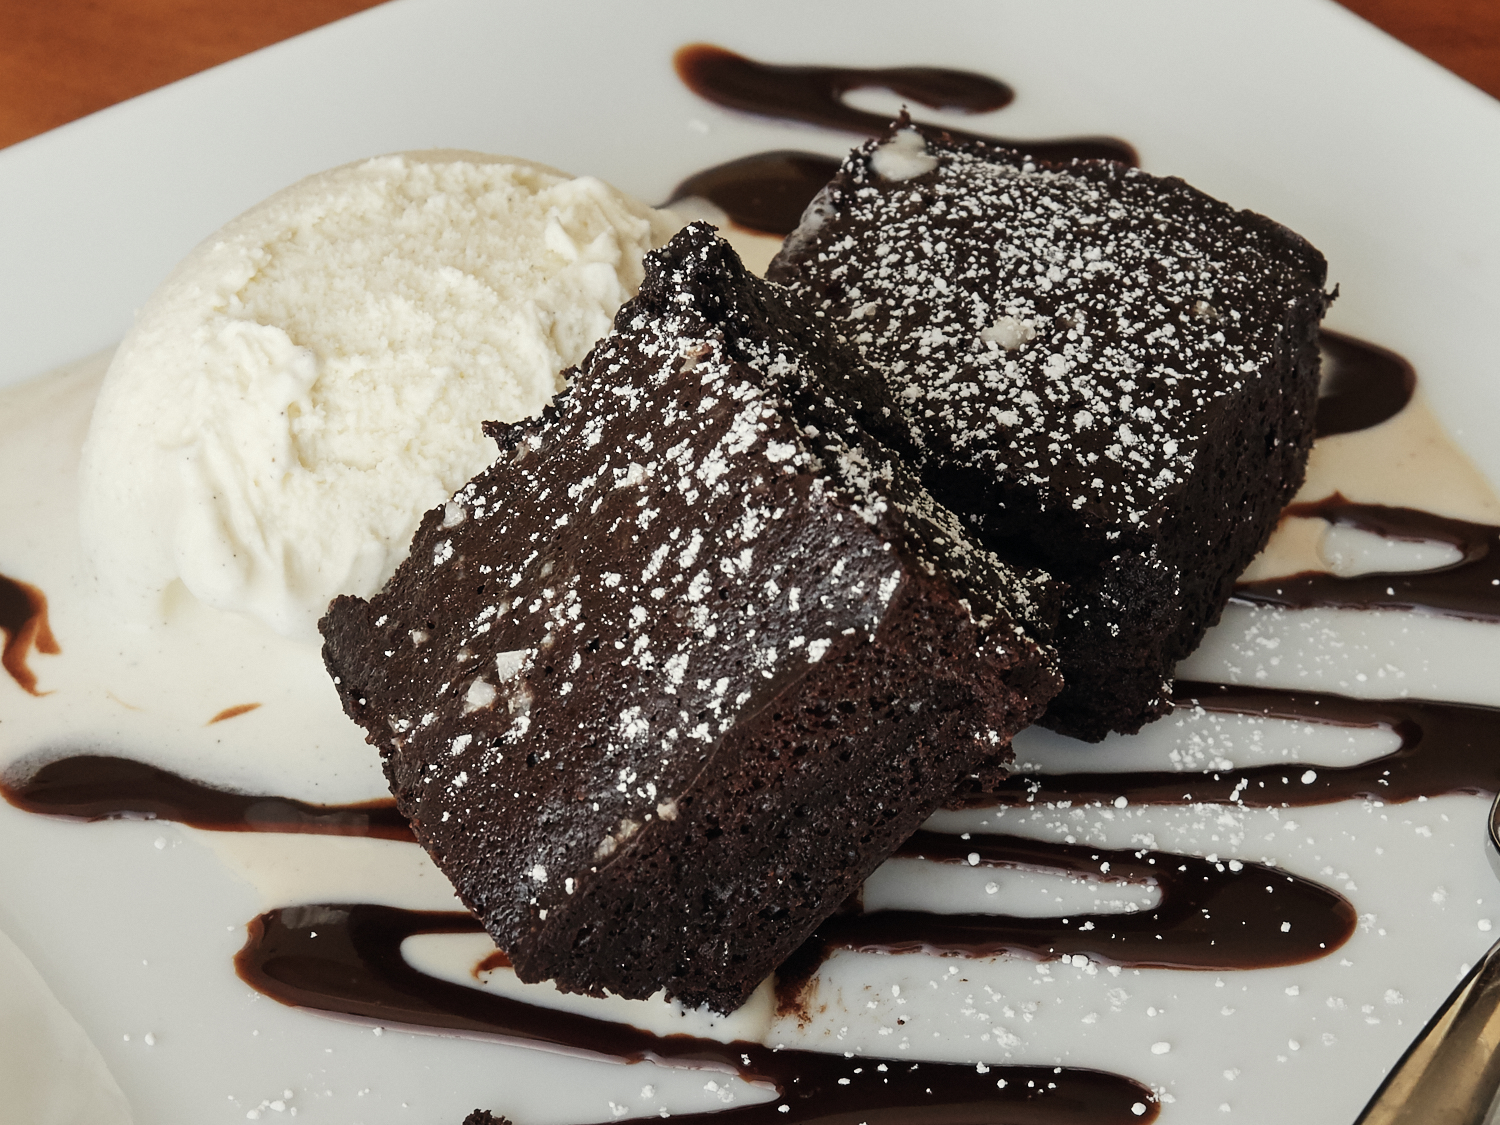 Serving Suggestion: Brownies, a sprinkle of powdered sugar, Ice cream & chocolate sauce.